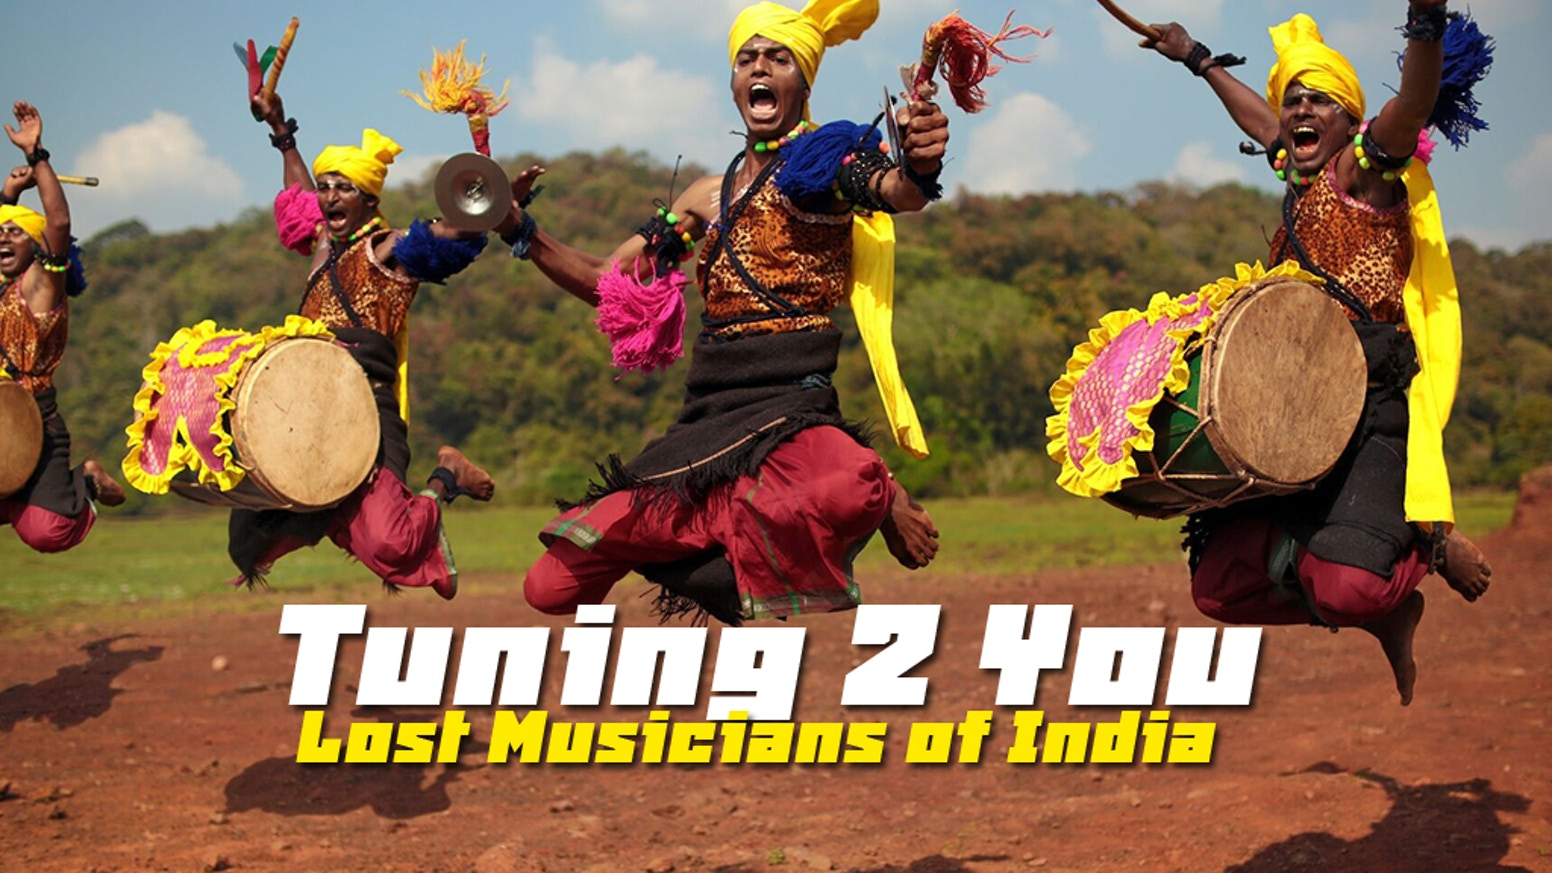 Tuning 2 You Lost Musicians Of India By Soumik Souvid Datta